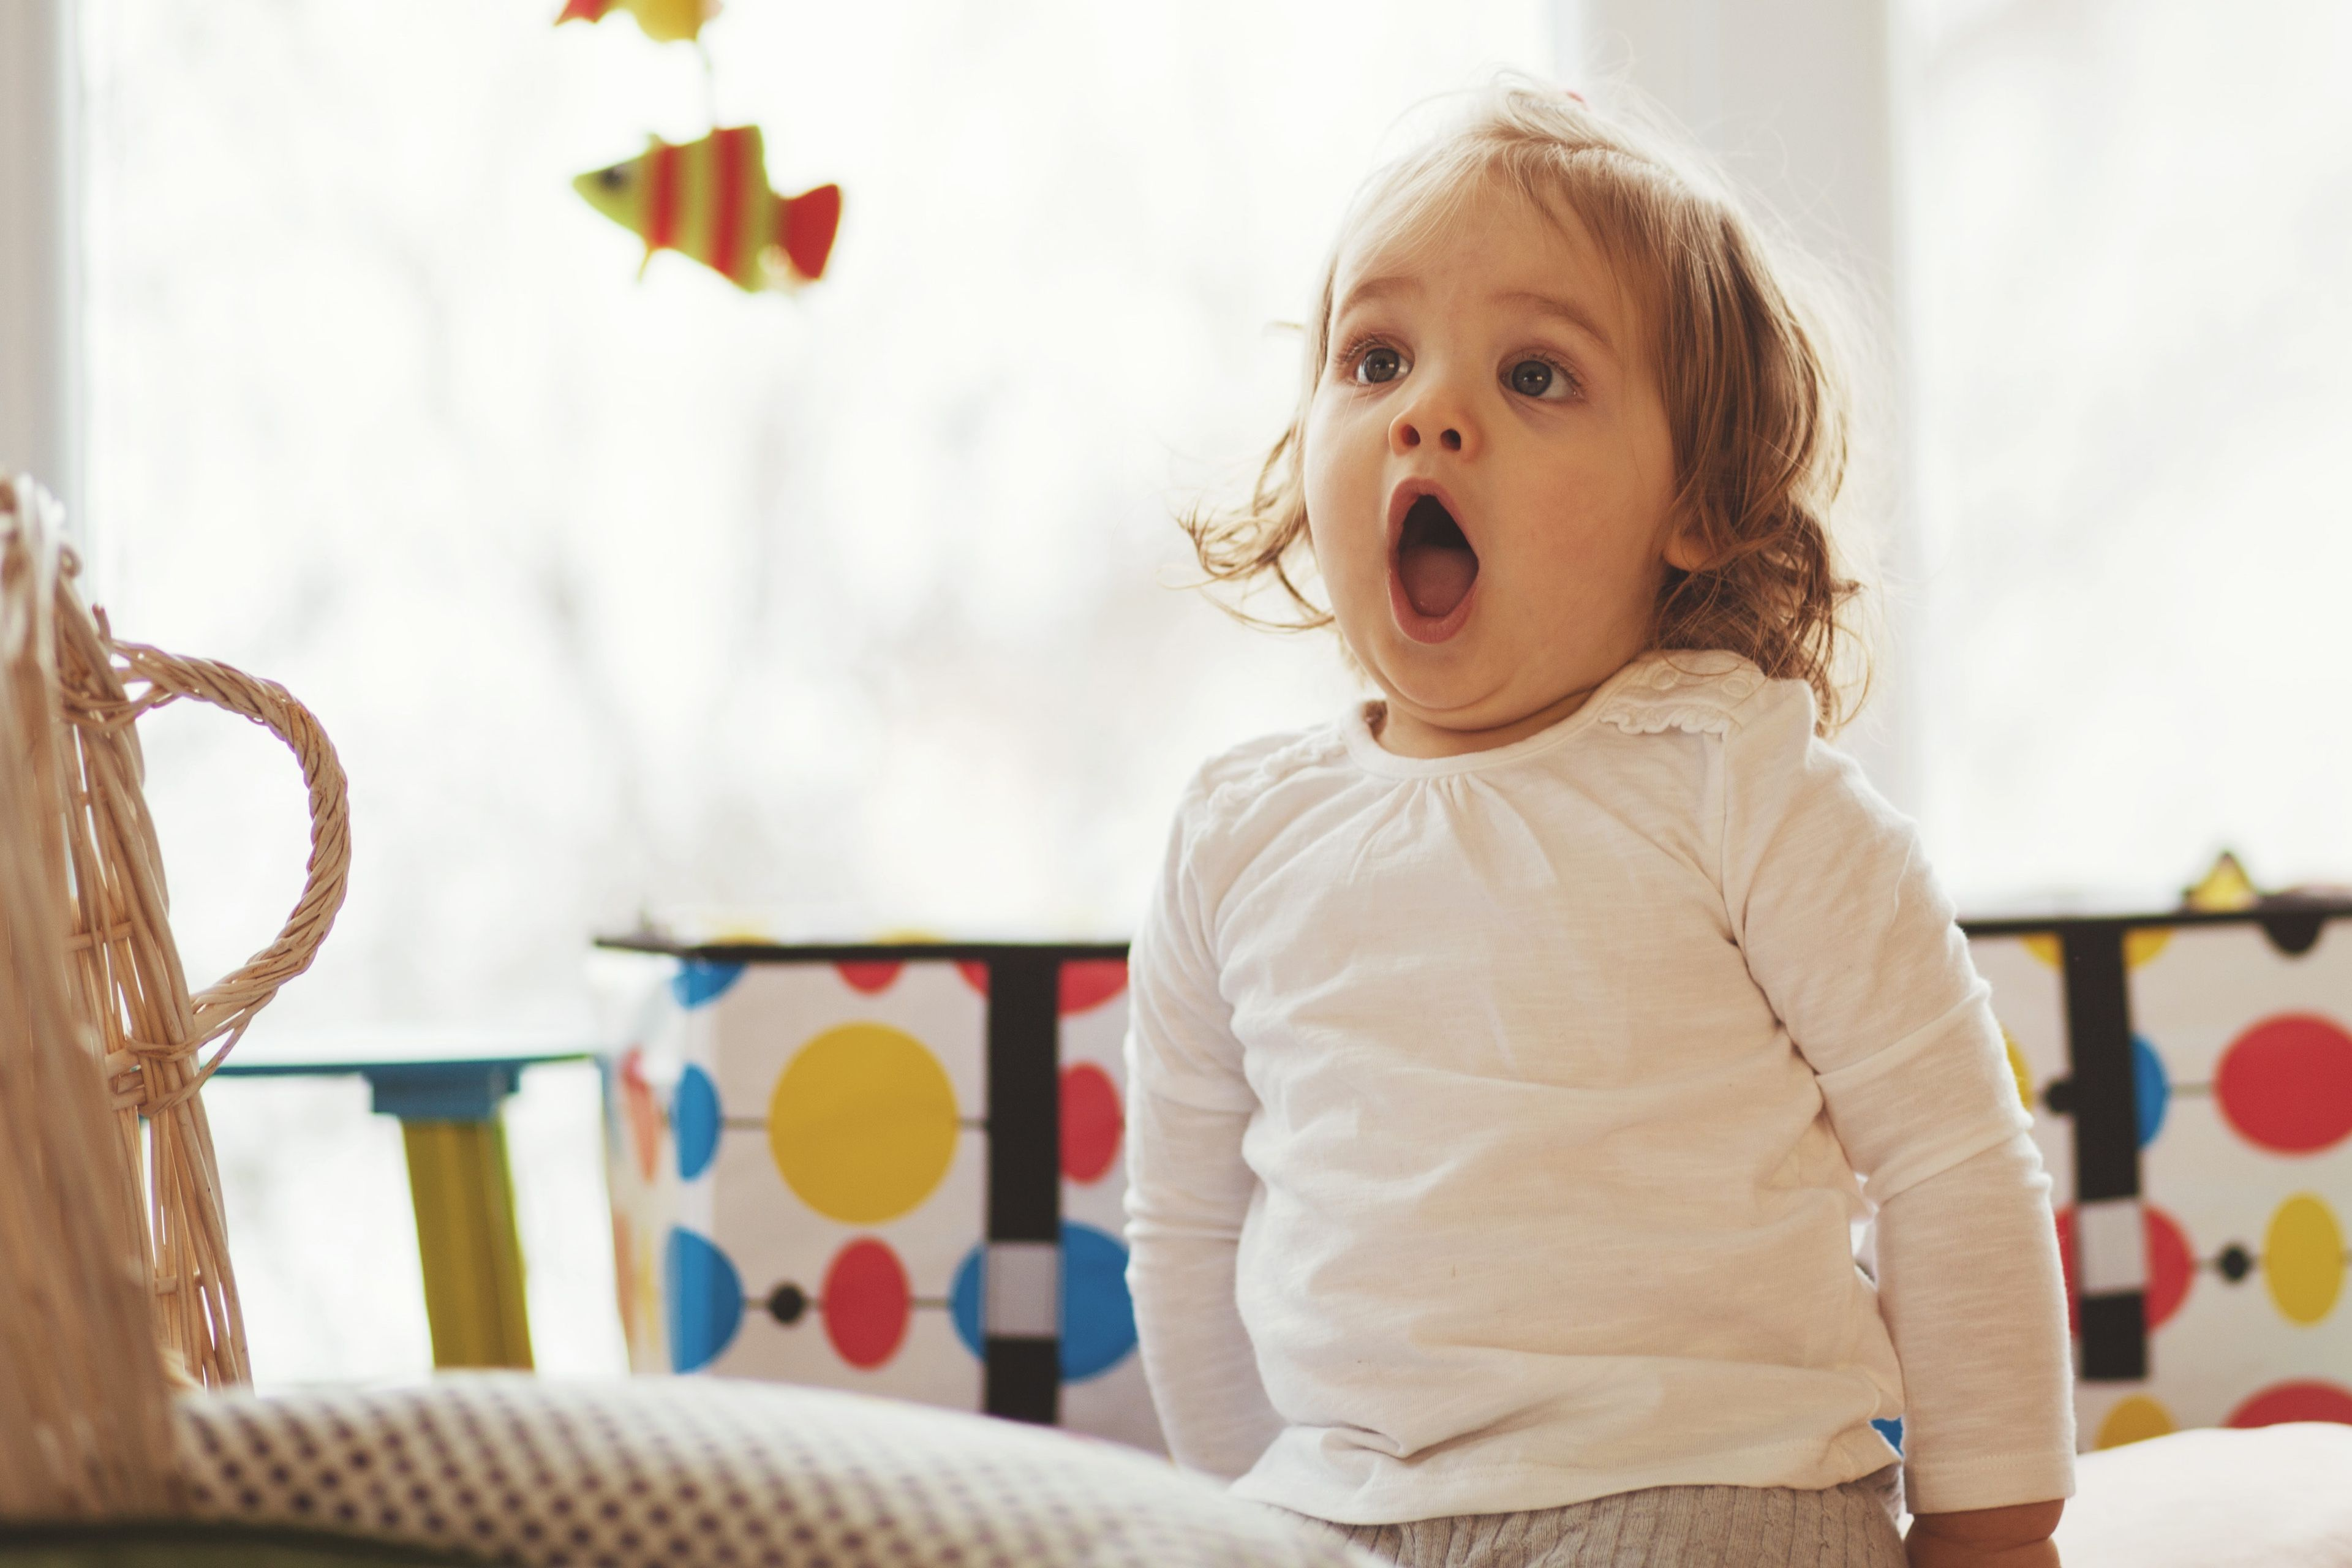 Suprised child. How Refinancing Affects Your Credit Score.